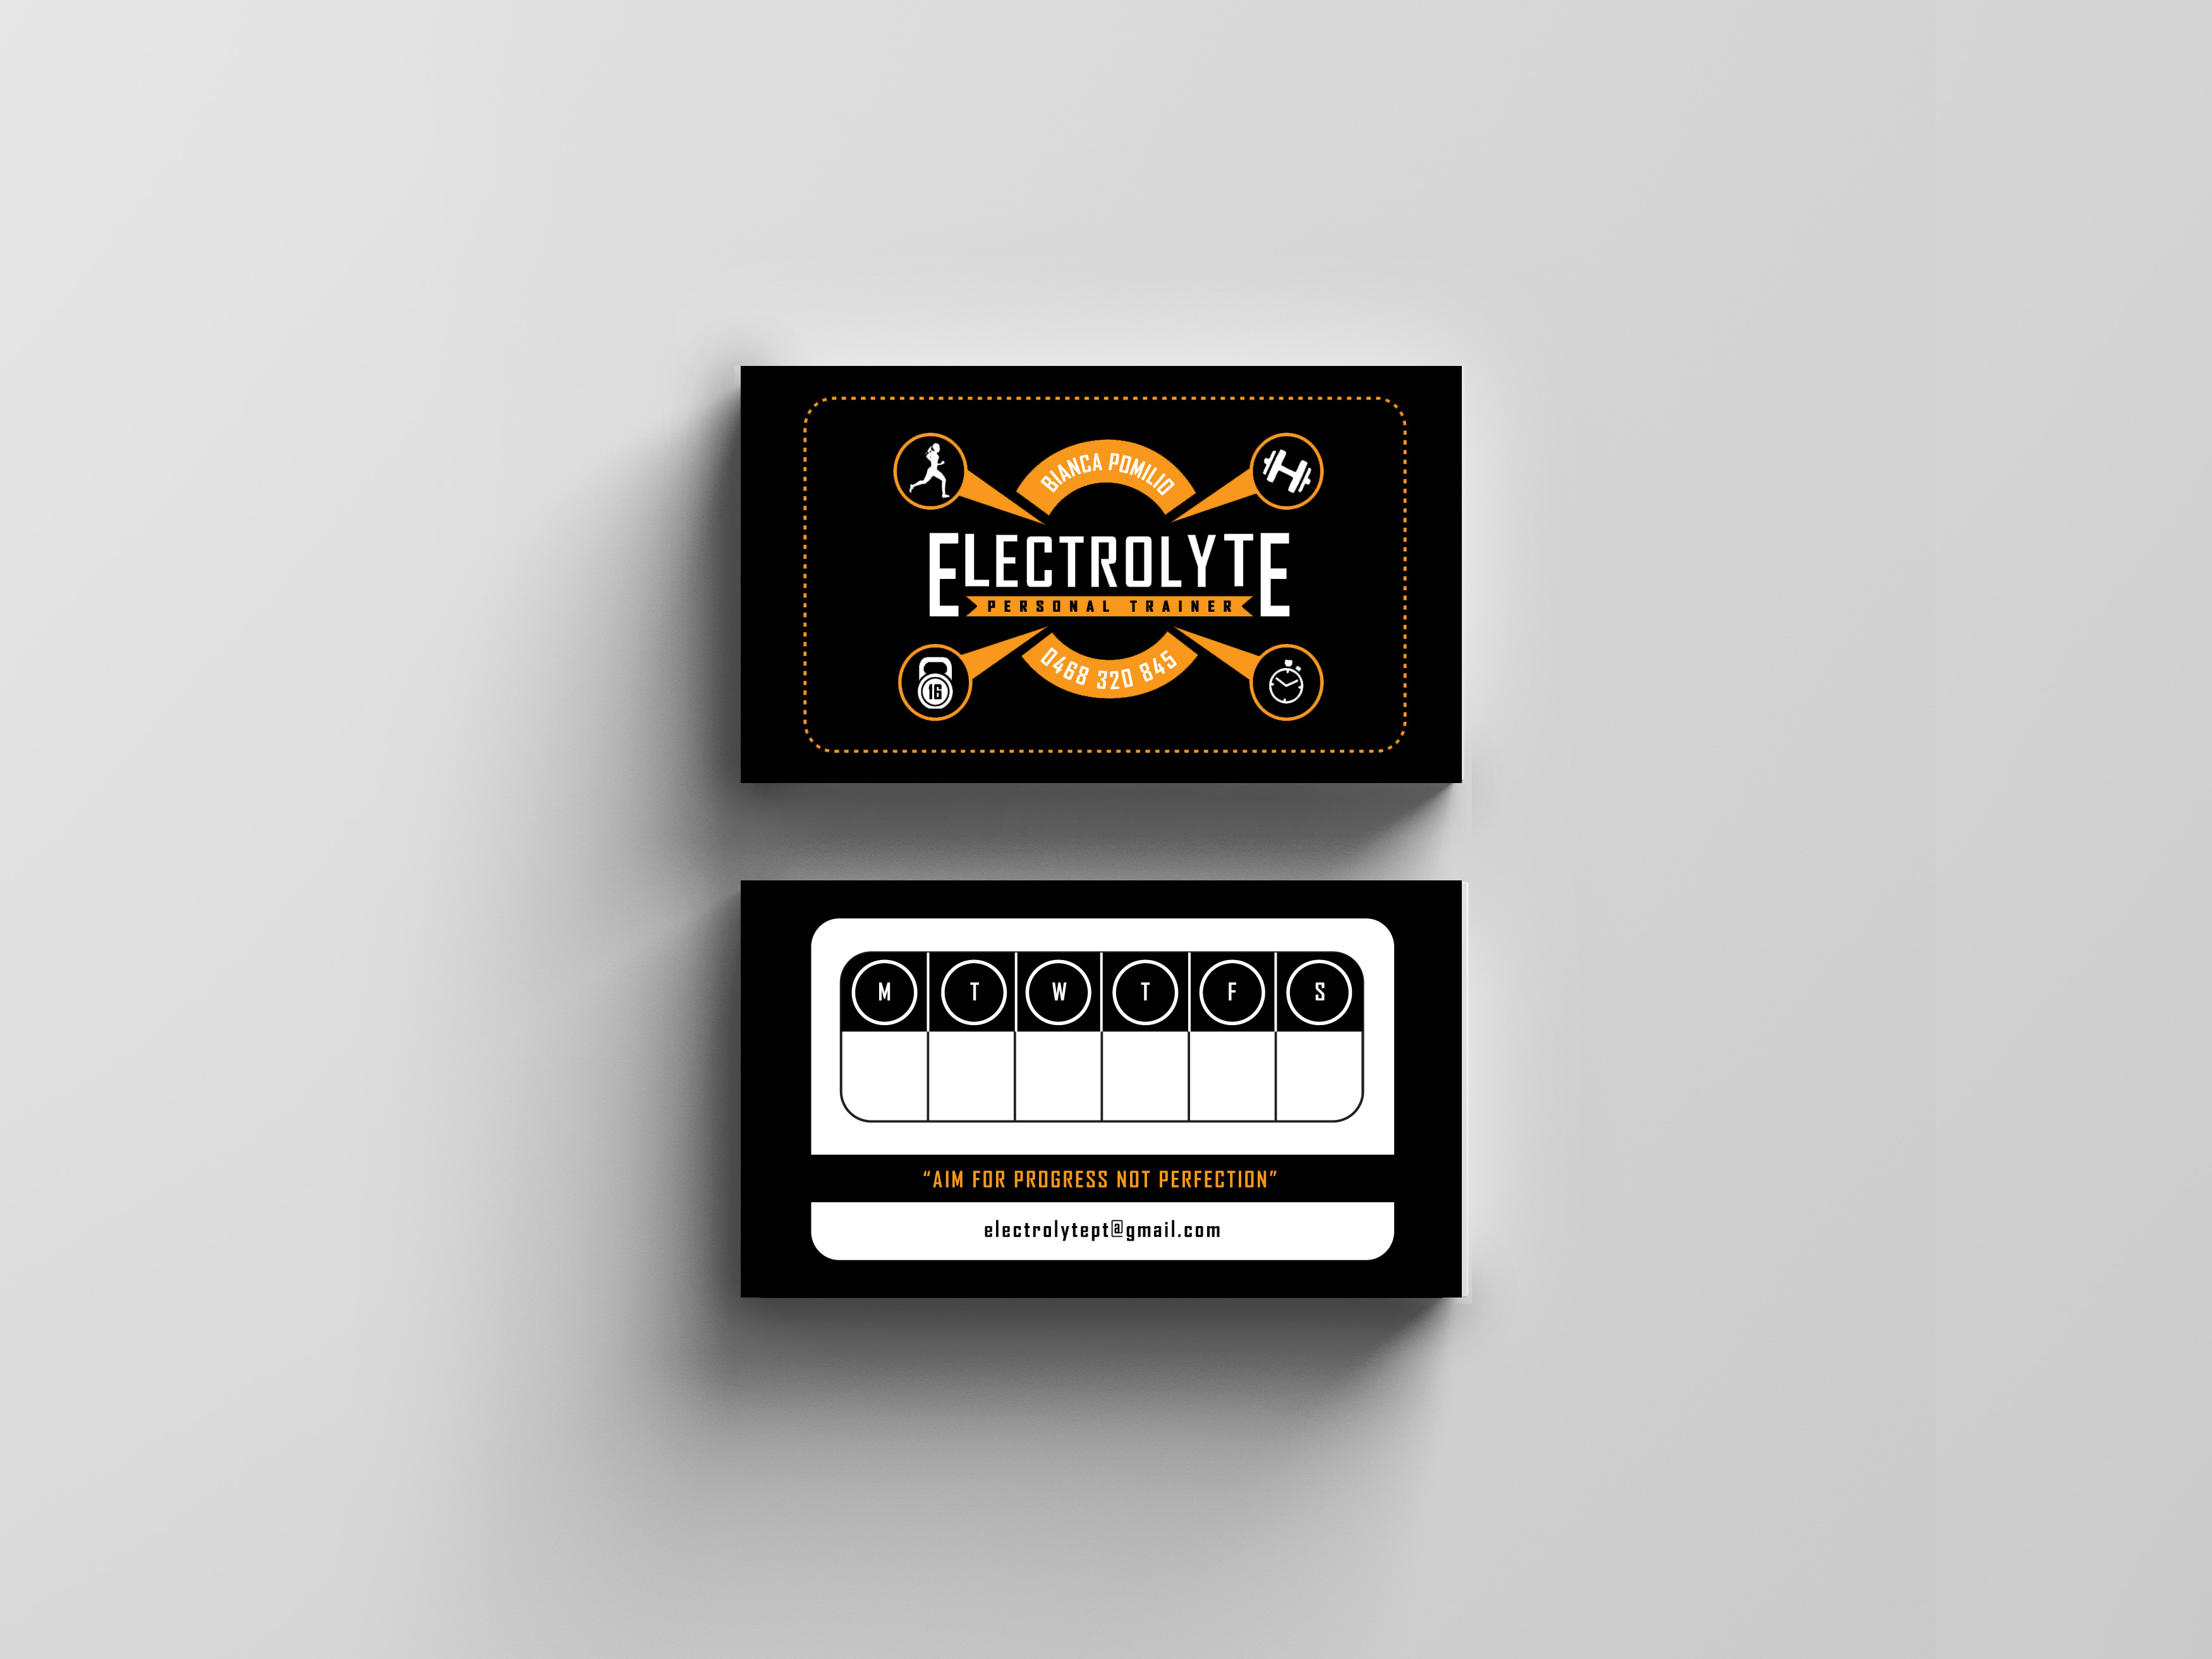 electrolyte personal training nf designs